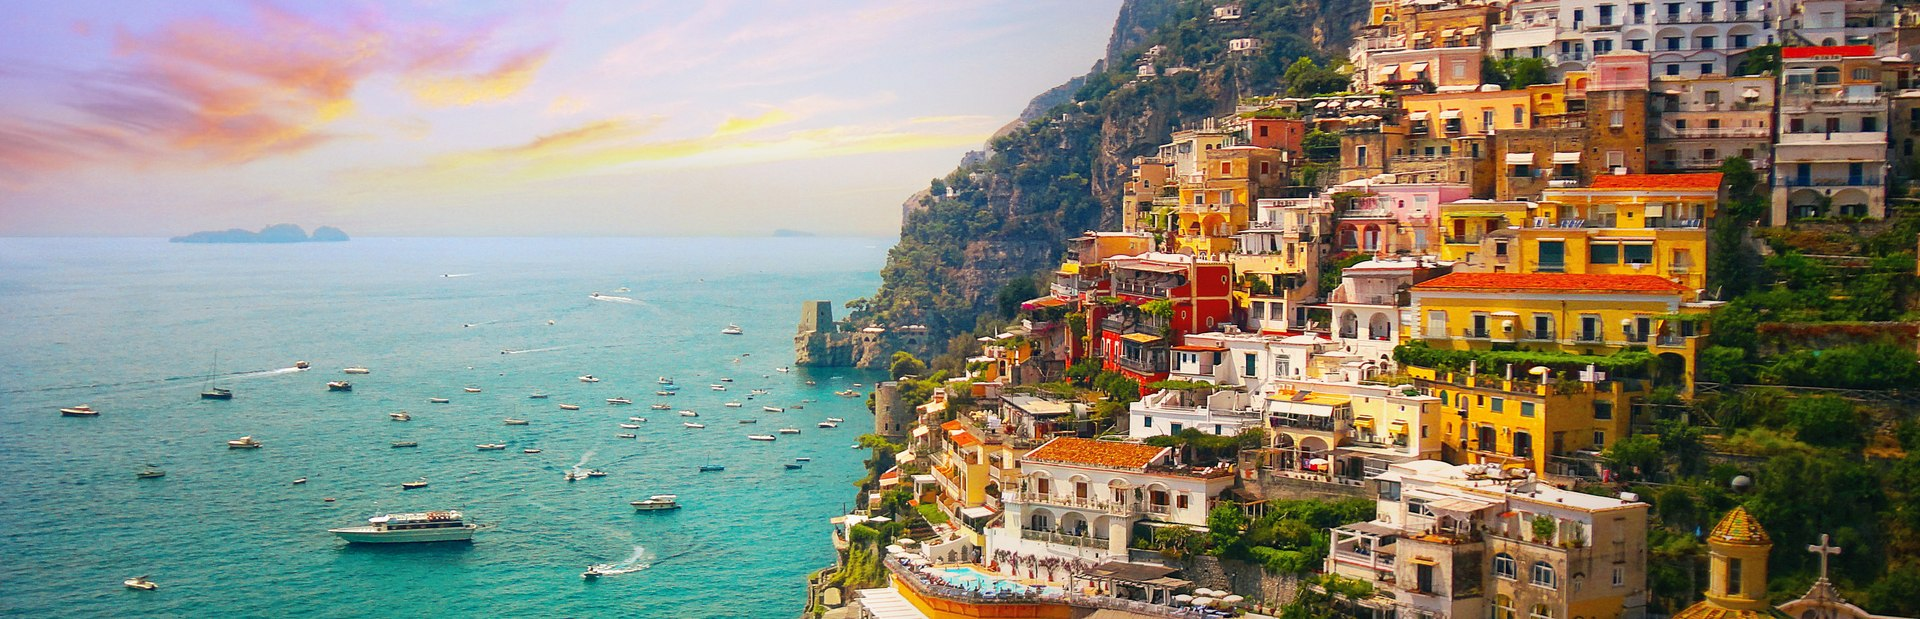 Amalfi Coast guide